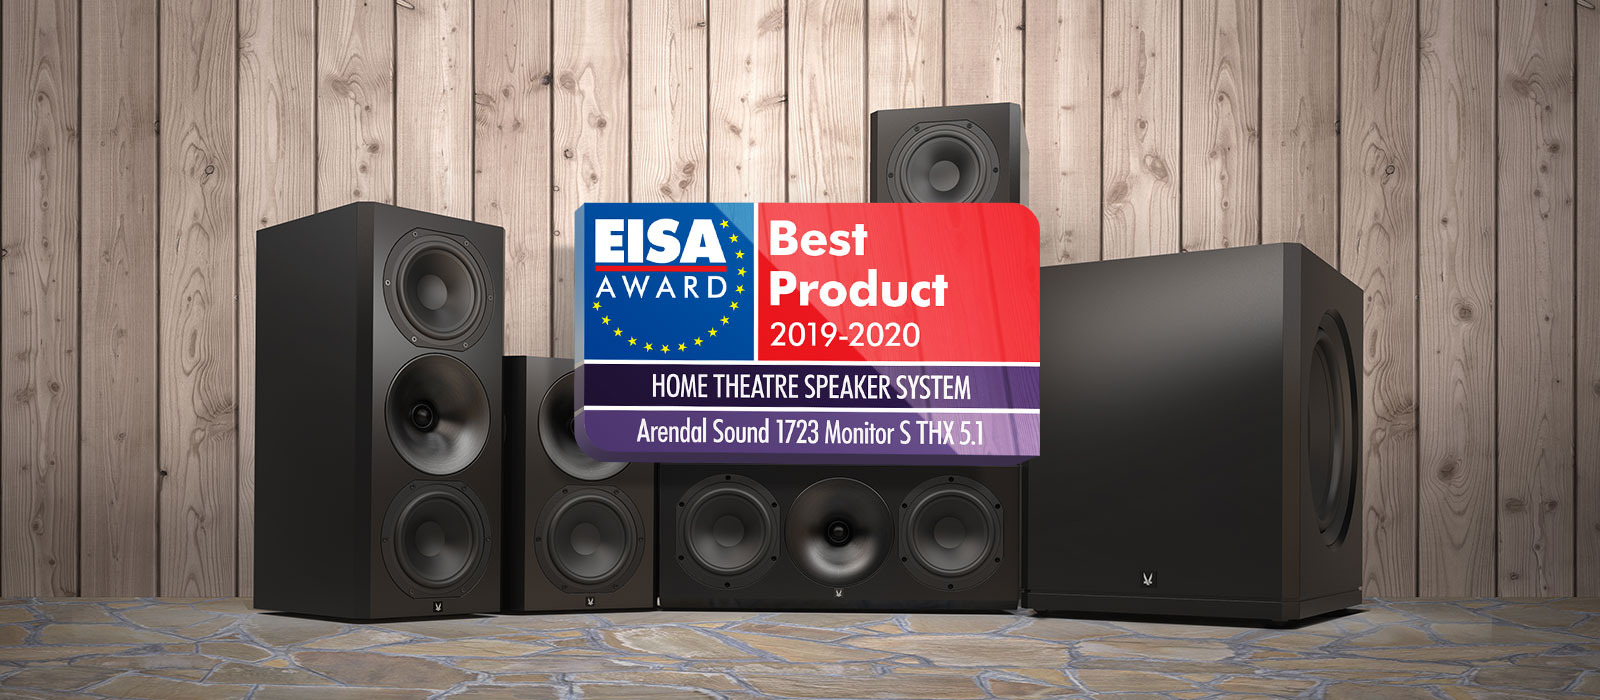 Best Home Subwoofer 2020.1723 S Thx 5 1 Eisa Award 2019 2020 Arendal Sound